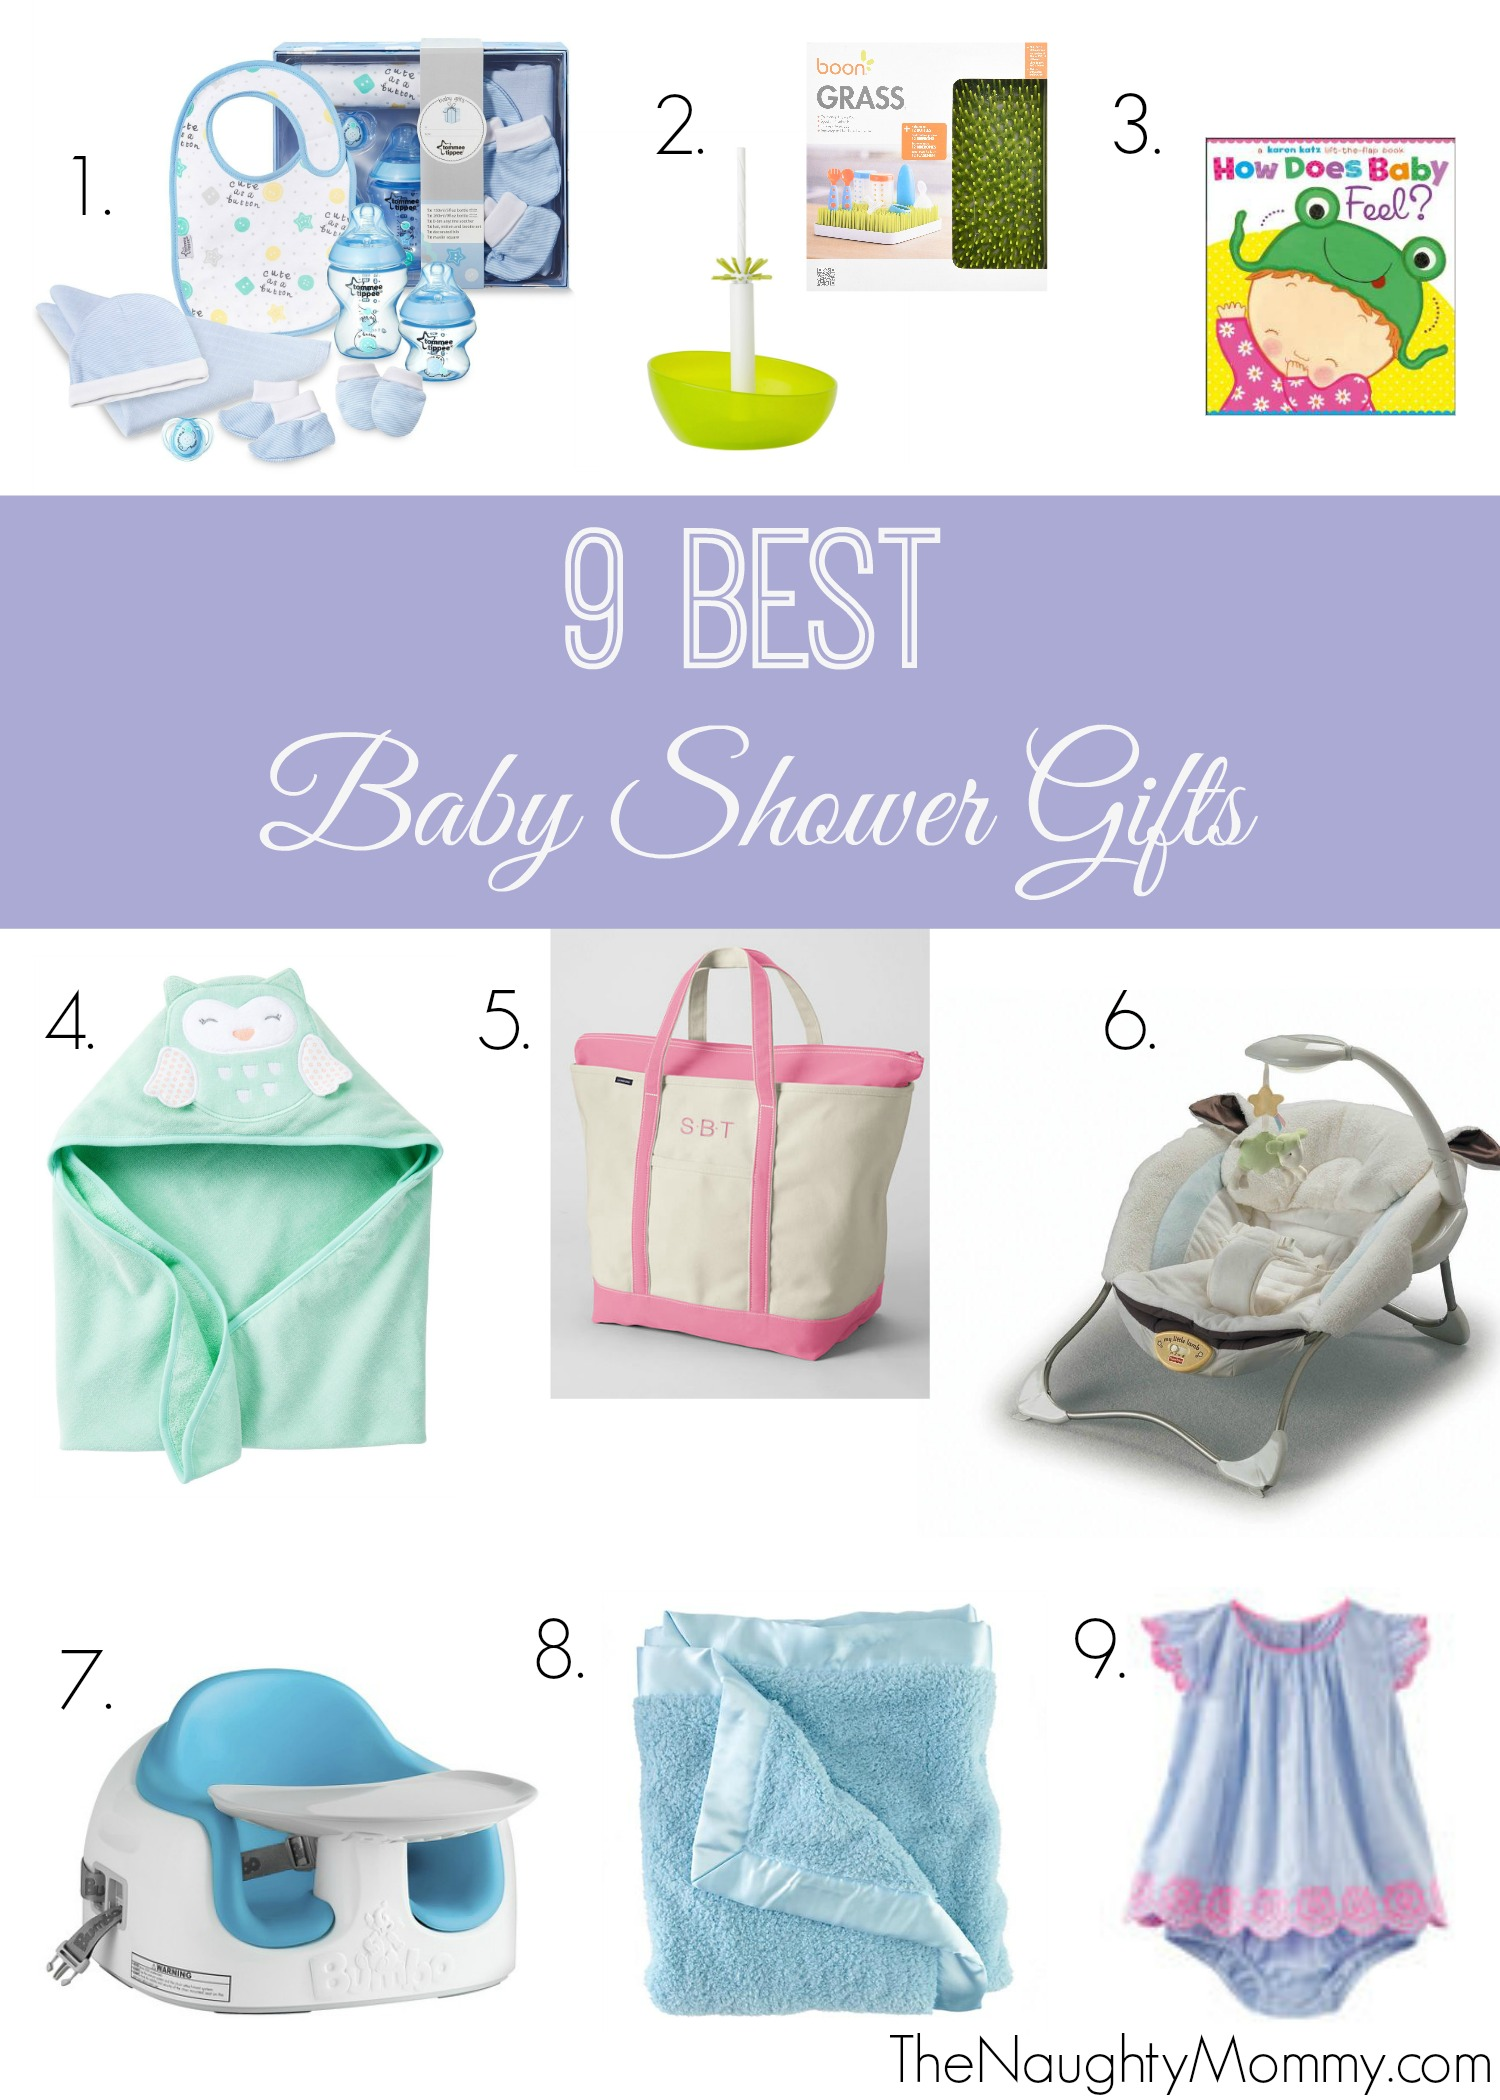 Best Baby Shower Gifts  The Naughty Mommy